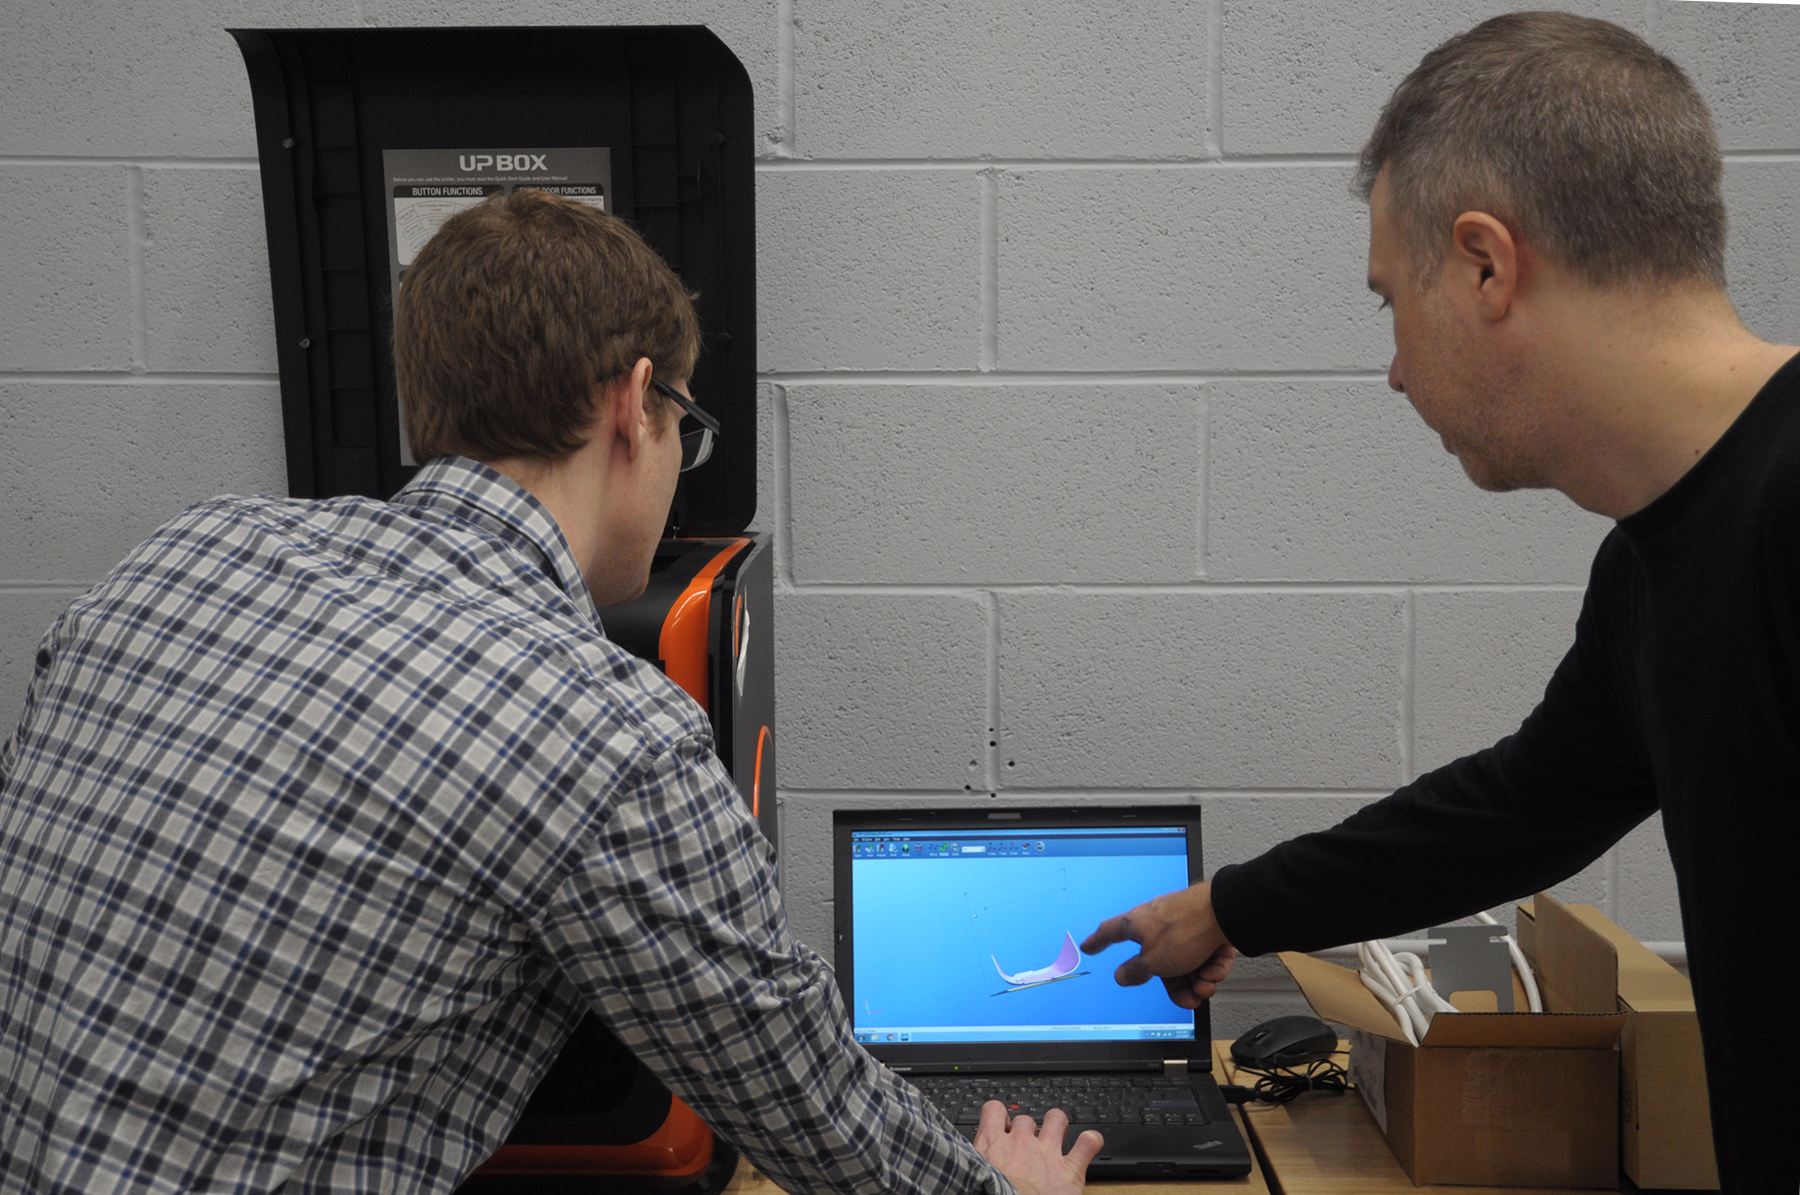 Tangent Design Group, Inc. Services 3D Printing